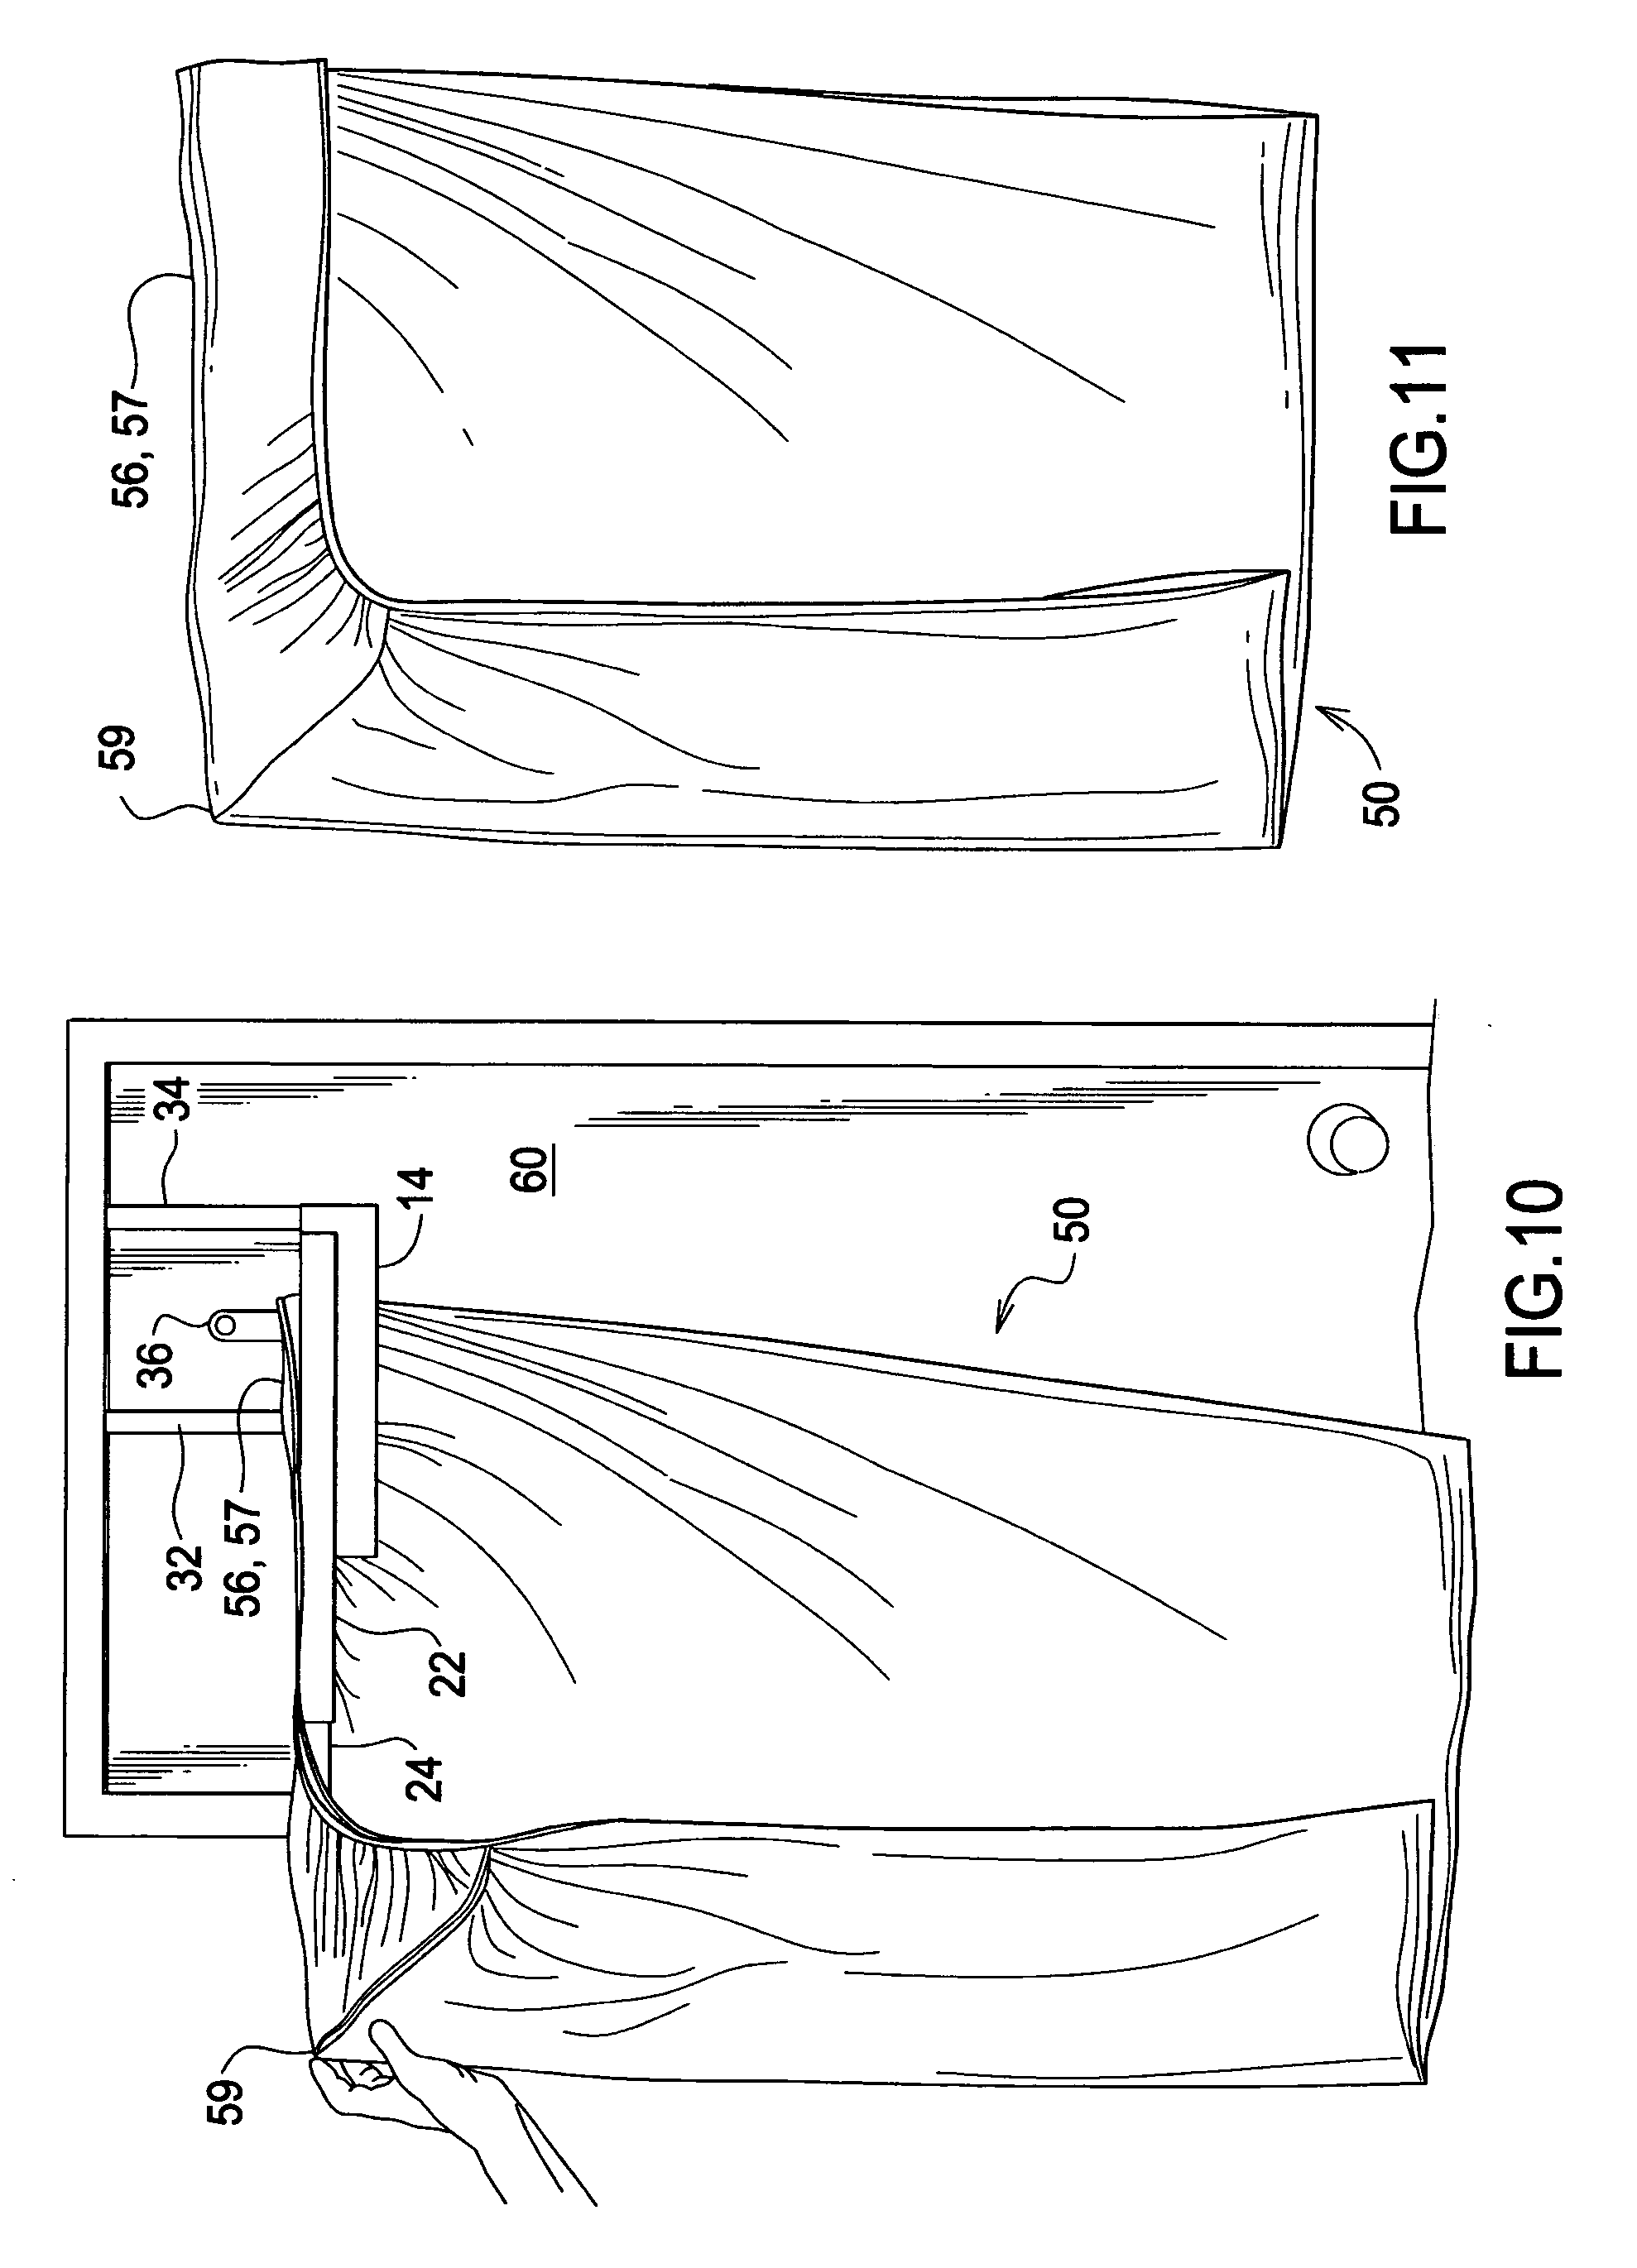 Patent US8387838 - Device for use in folding fitted sheets ...